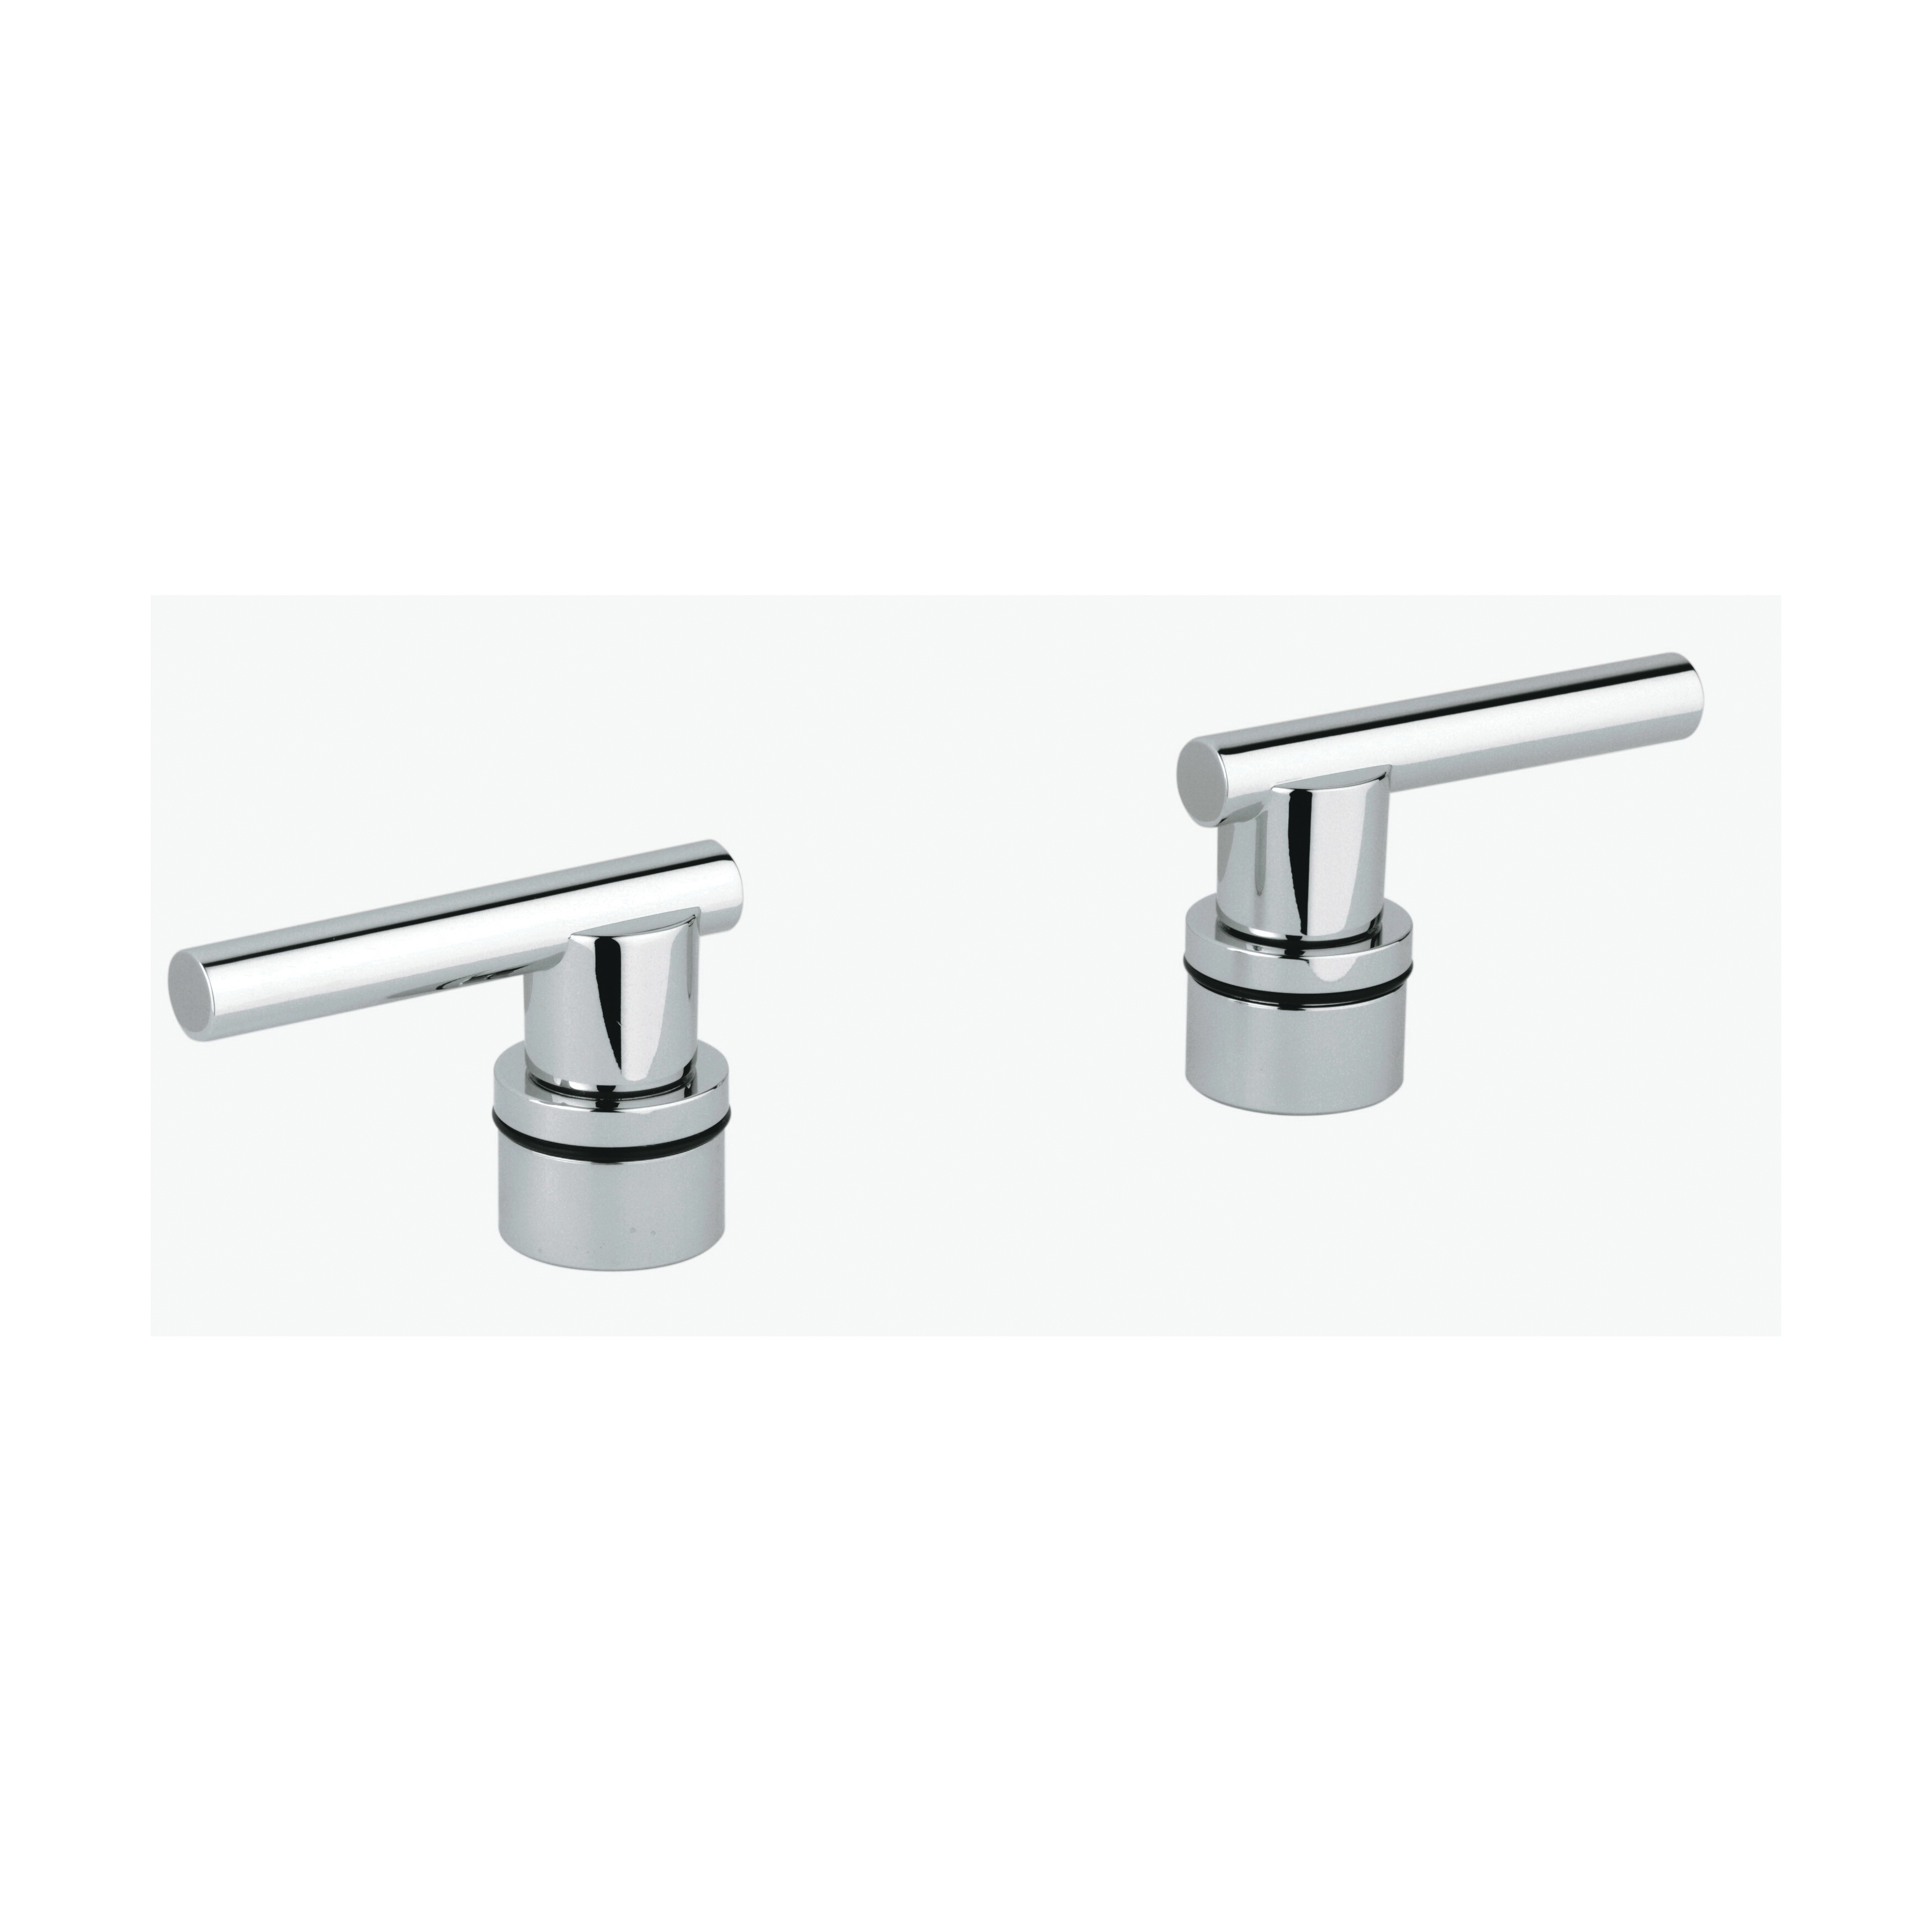 GROHE 18034000 Atrio® Lever Handle, For Use With Roman Tub Filler, Bathroom Sink, Brass, StarLight® Chrome, Import